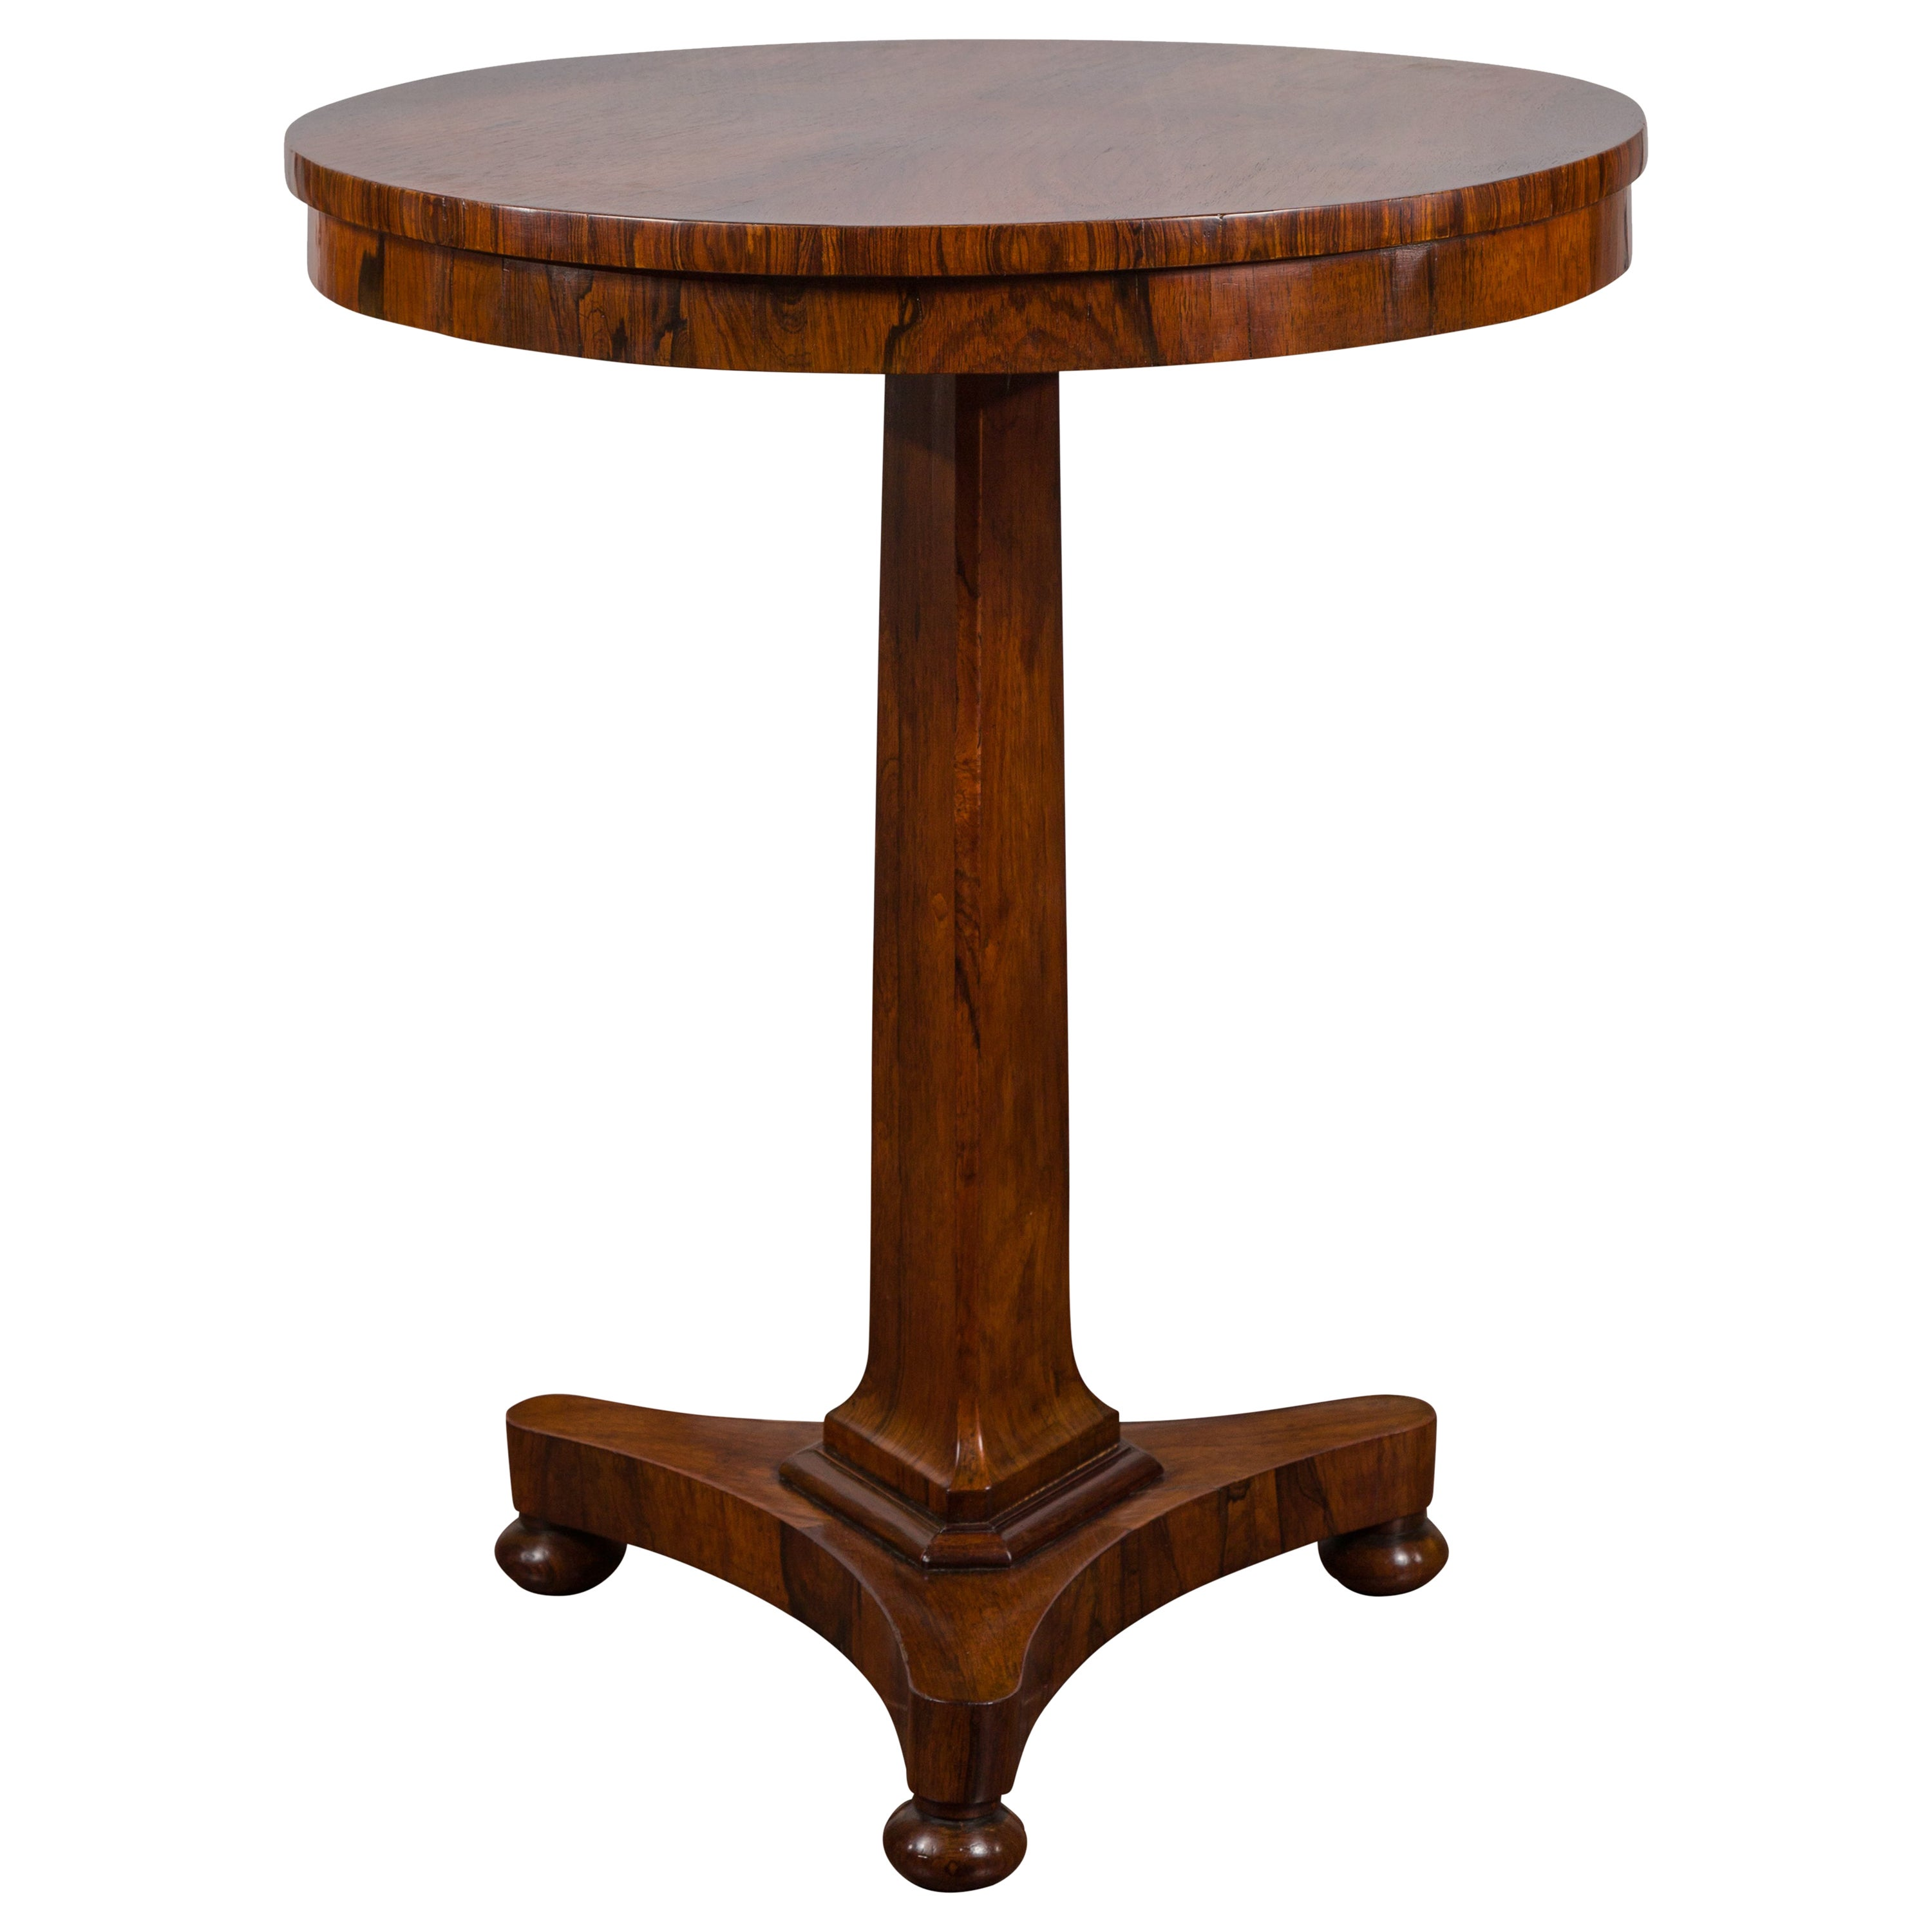 English 1820s Regency Period Rosewood Pedestal Side Table with Circular Top